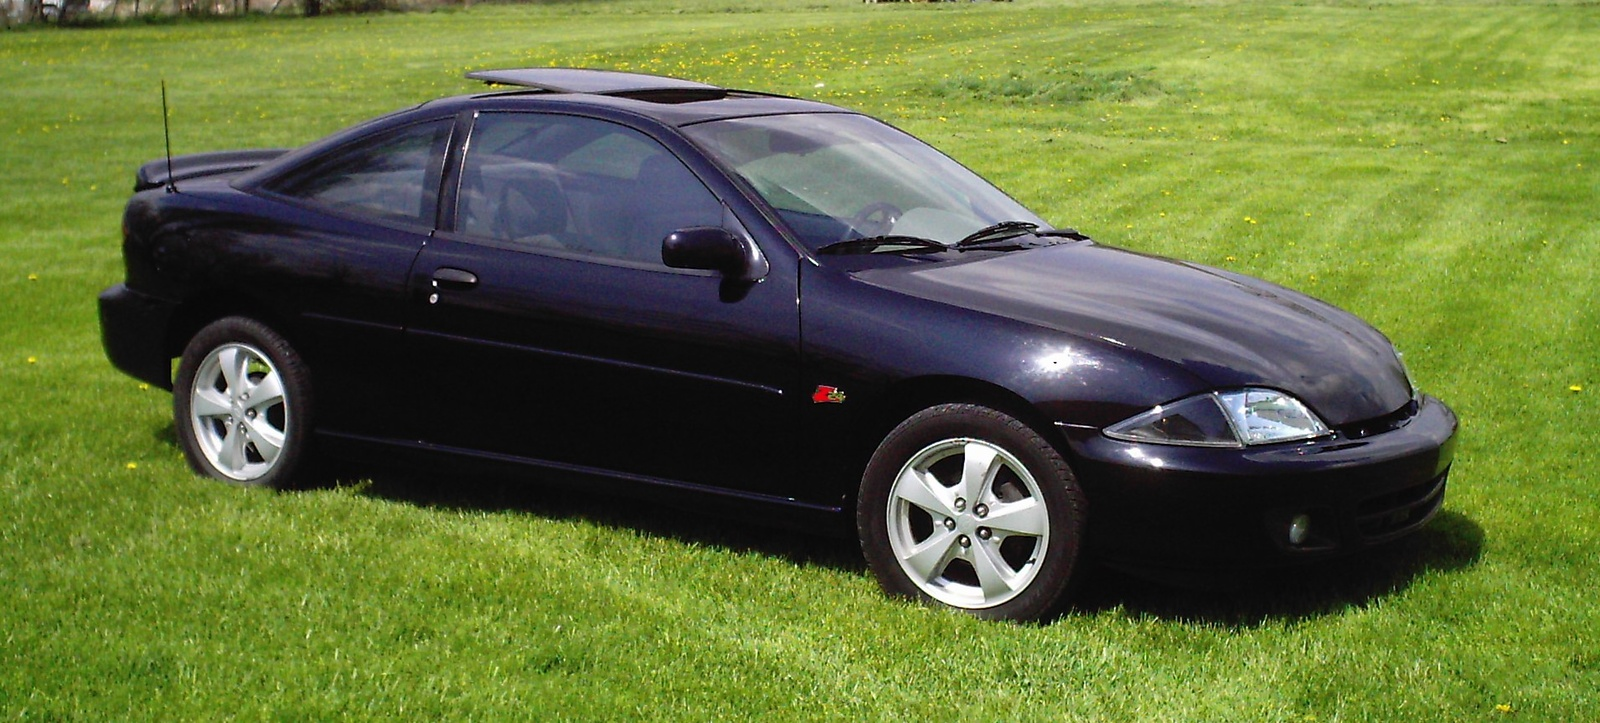 Cavalier chevy cavalier 2004 reviews : 2004 Chevrolet Cavalier coupe (j) – pictures, information and ...